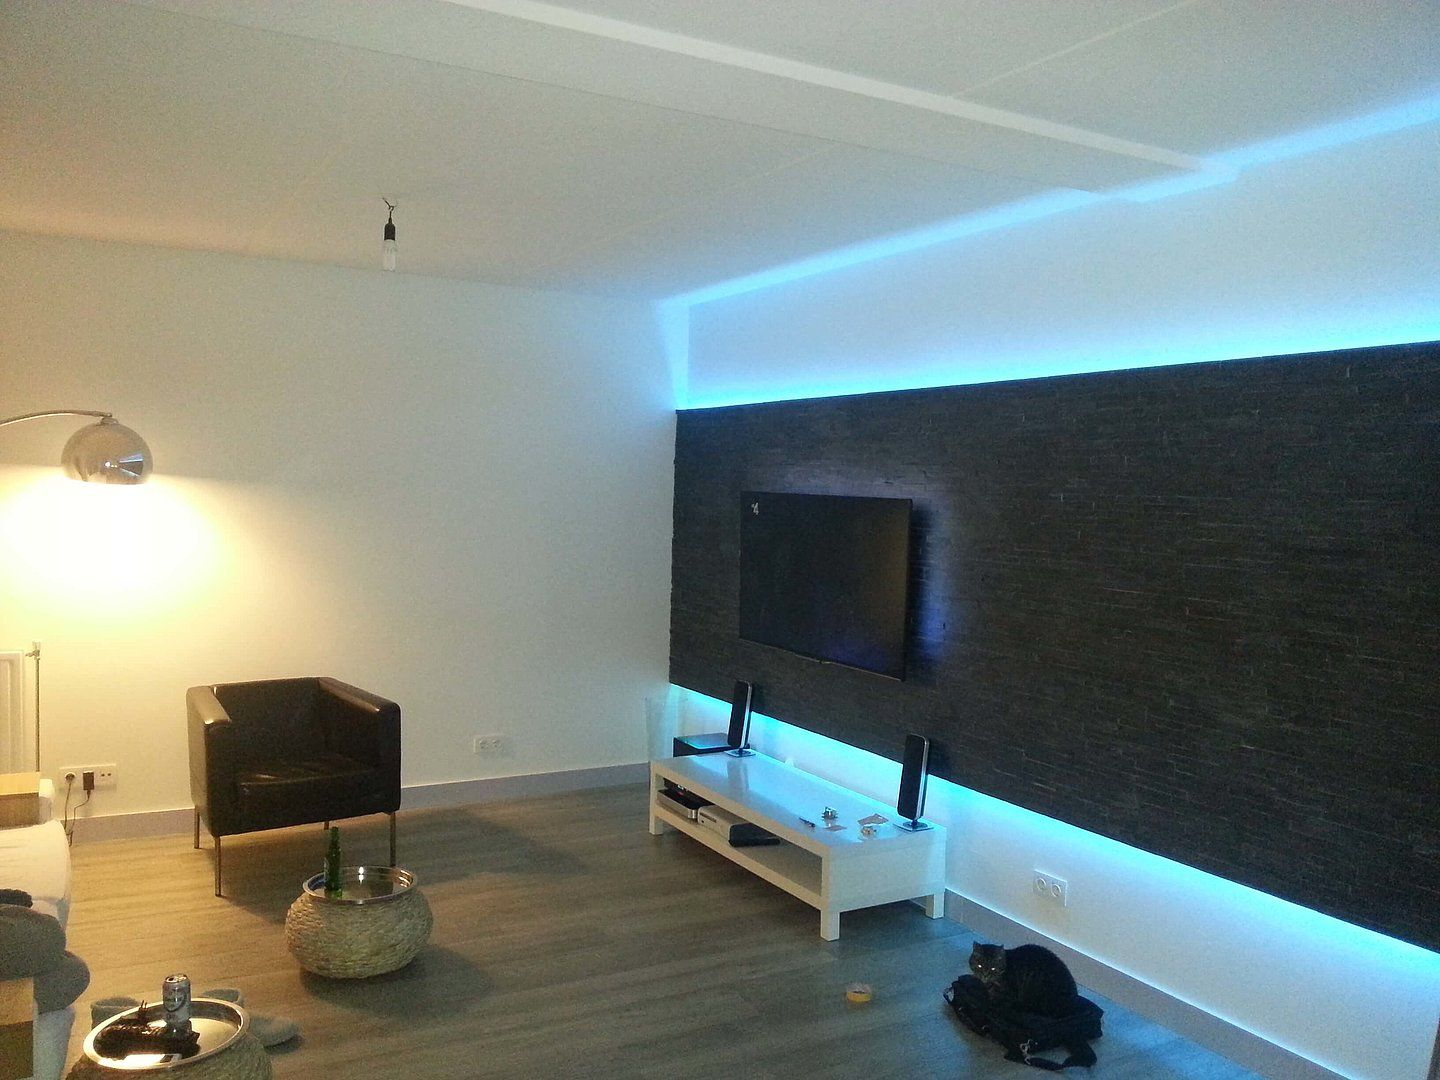 led verlichting achter tv inspiratie door ledstripkoning. Black Bedroom Furniture Sets. Home Design Ideas